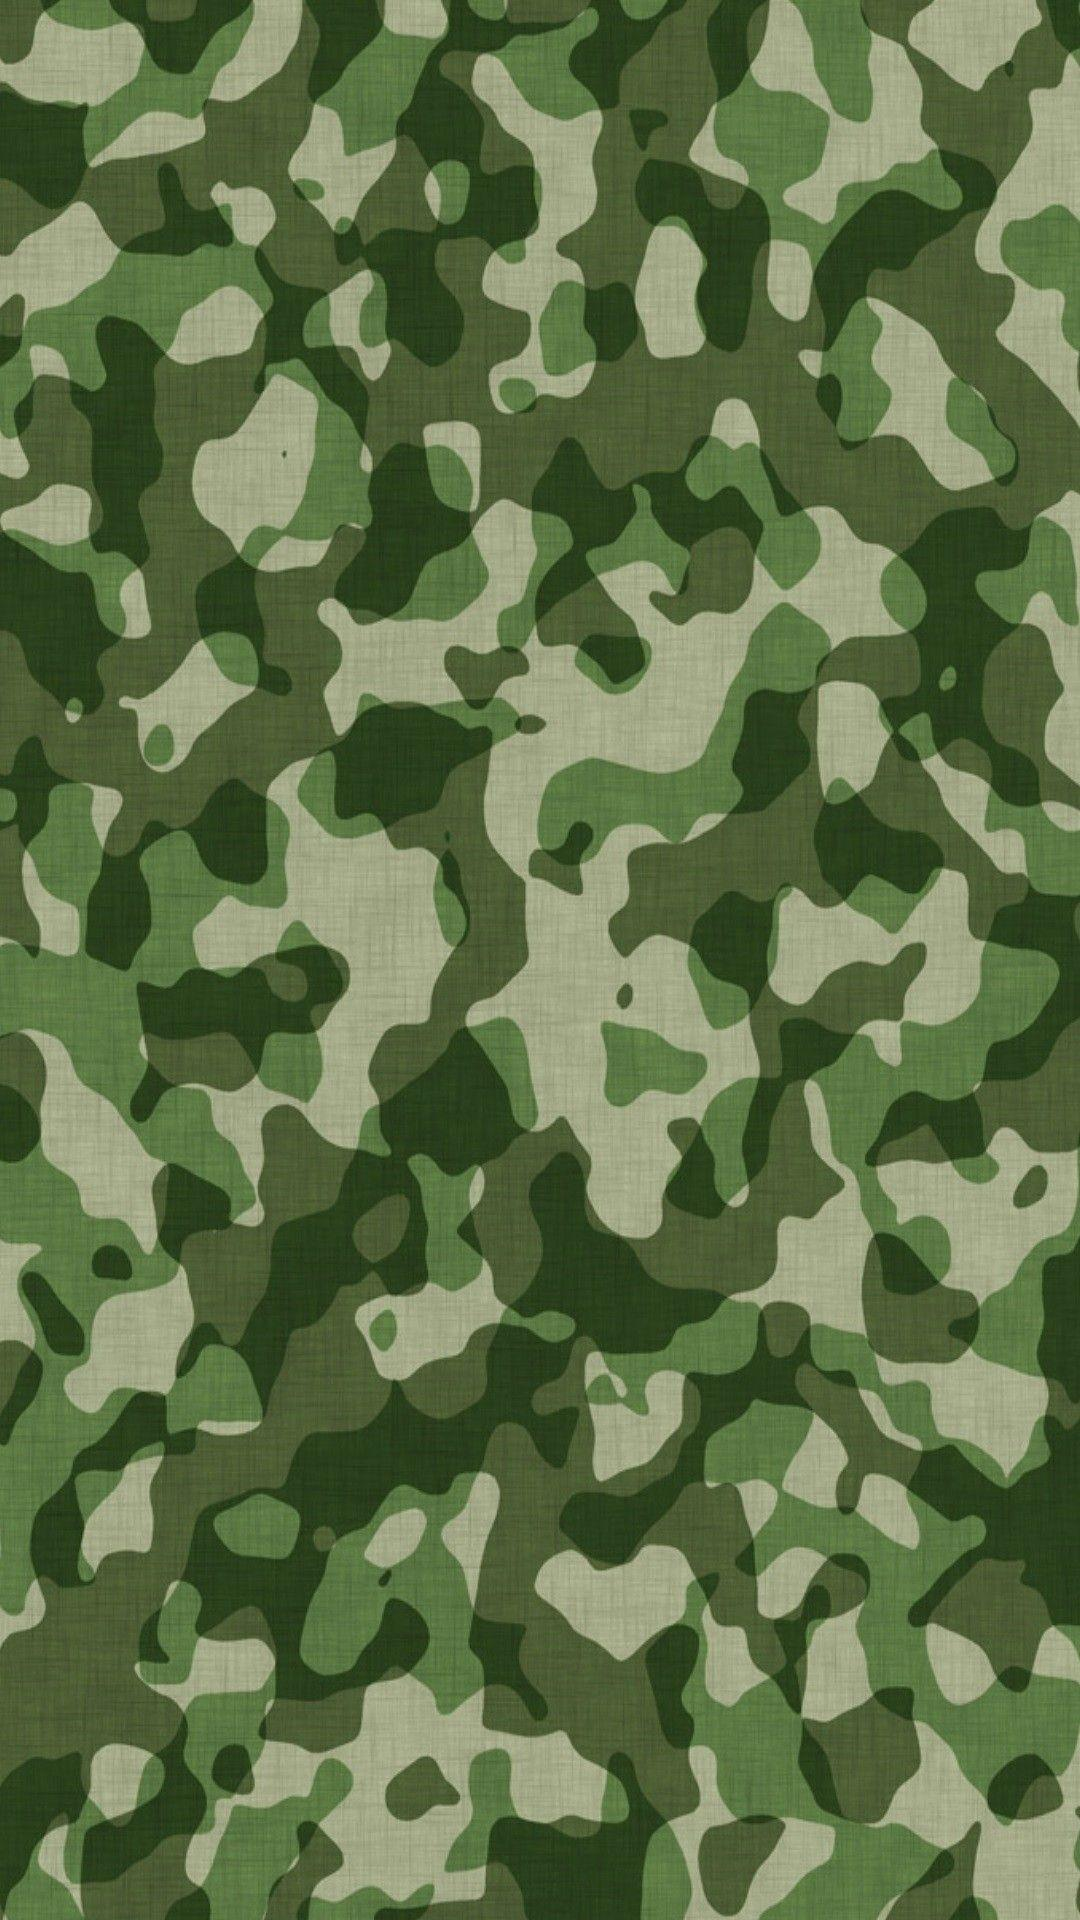 camo army camouflage background iphone wallpapers backgrounds hd android green military 4k desktop hunting mobile woodland pink digital 1080p computer